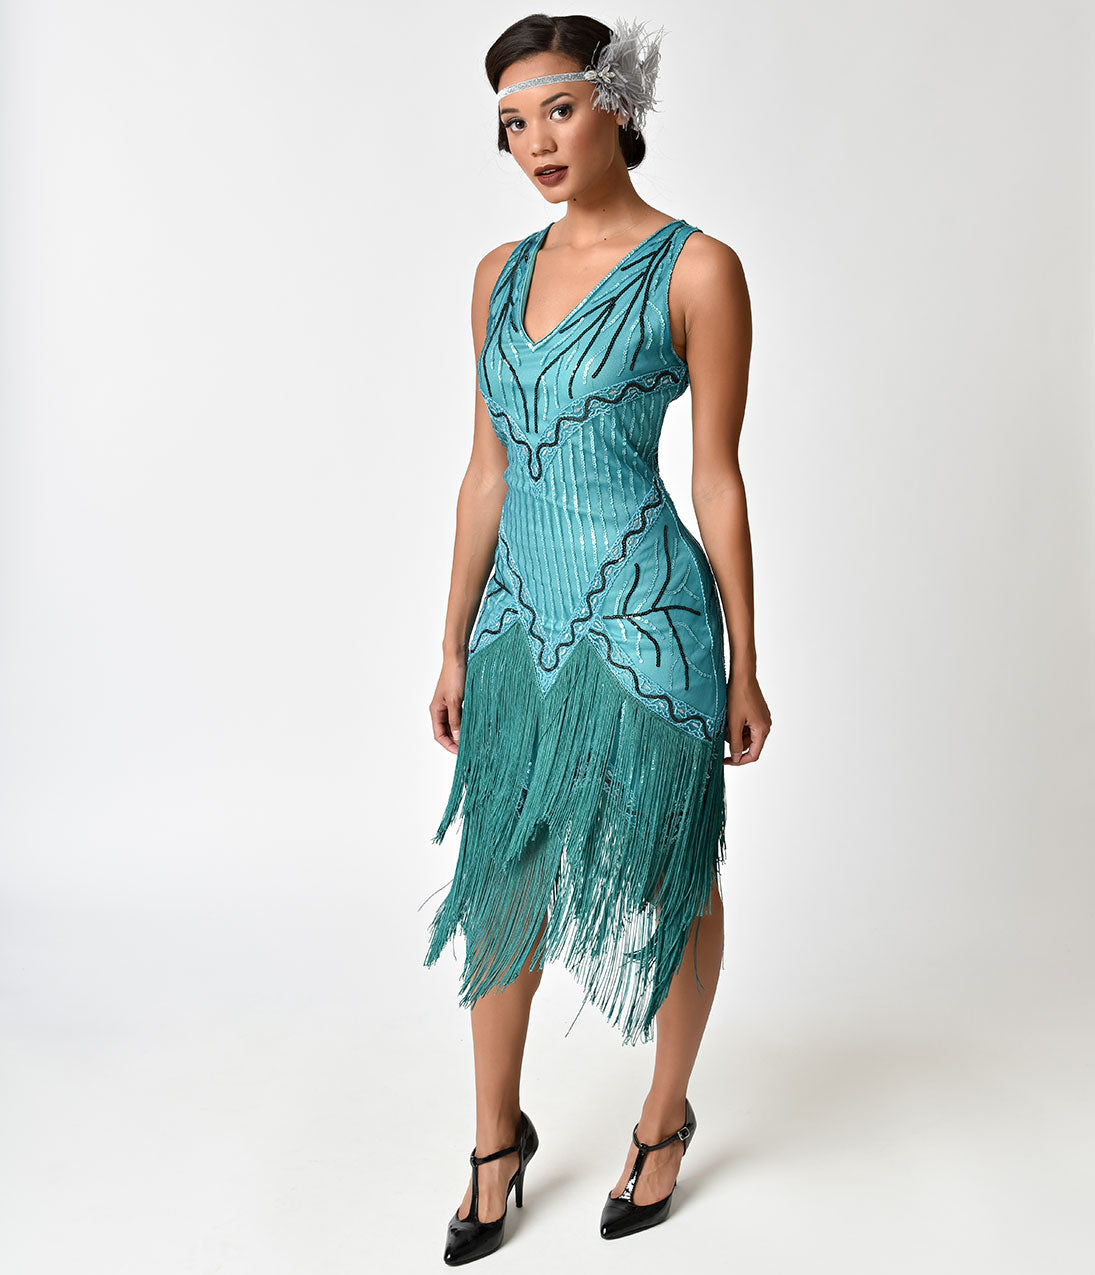 Flapper Costume: How to Dress Like a 20s Flapper Girl